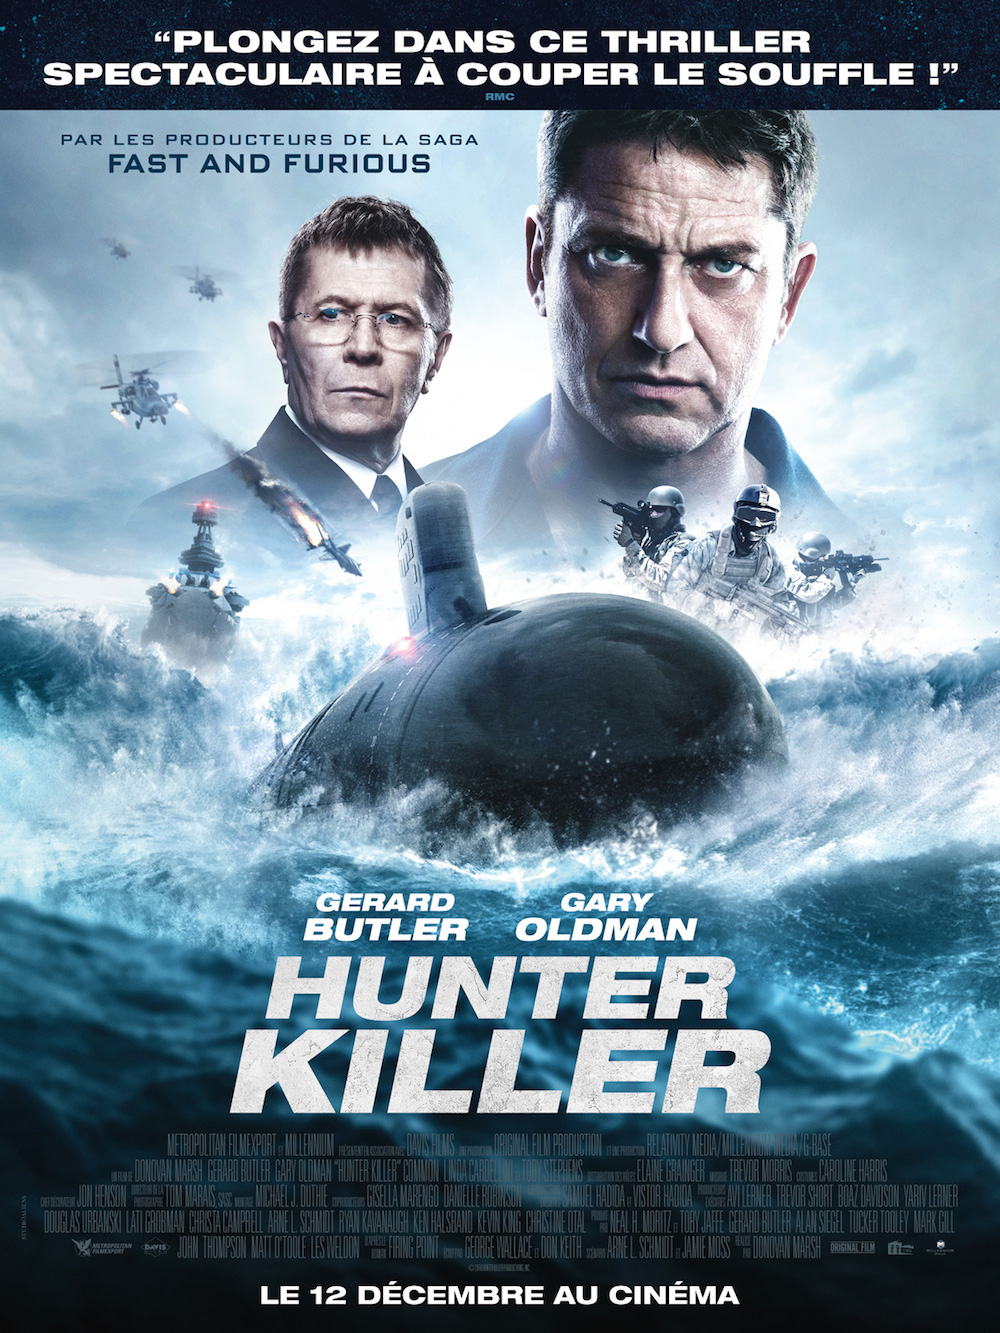 Hunter Killer affiche furyosa